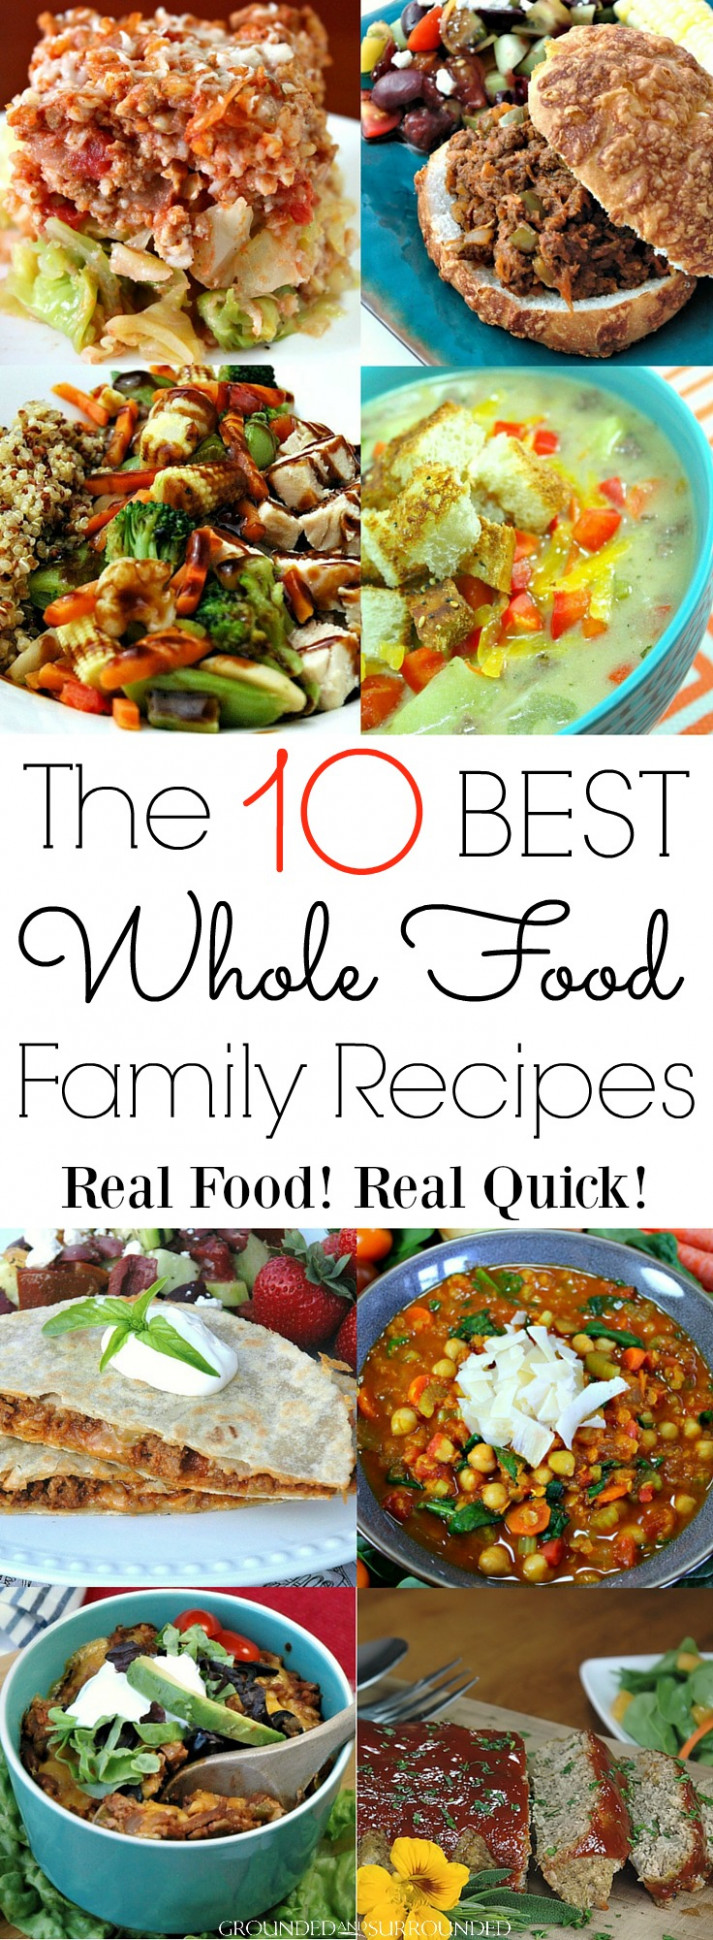 The 10 BEST Whole Food Family Recipes | Grounded & Surrounded - whole food recipes